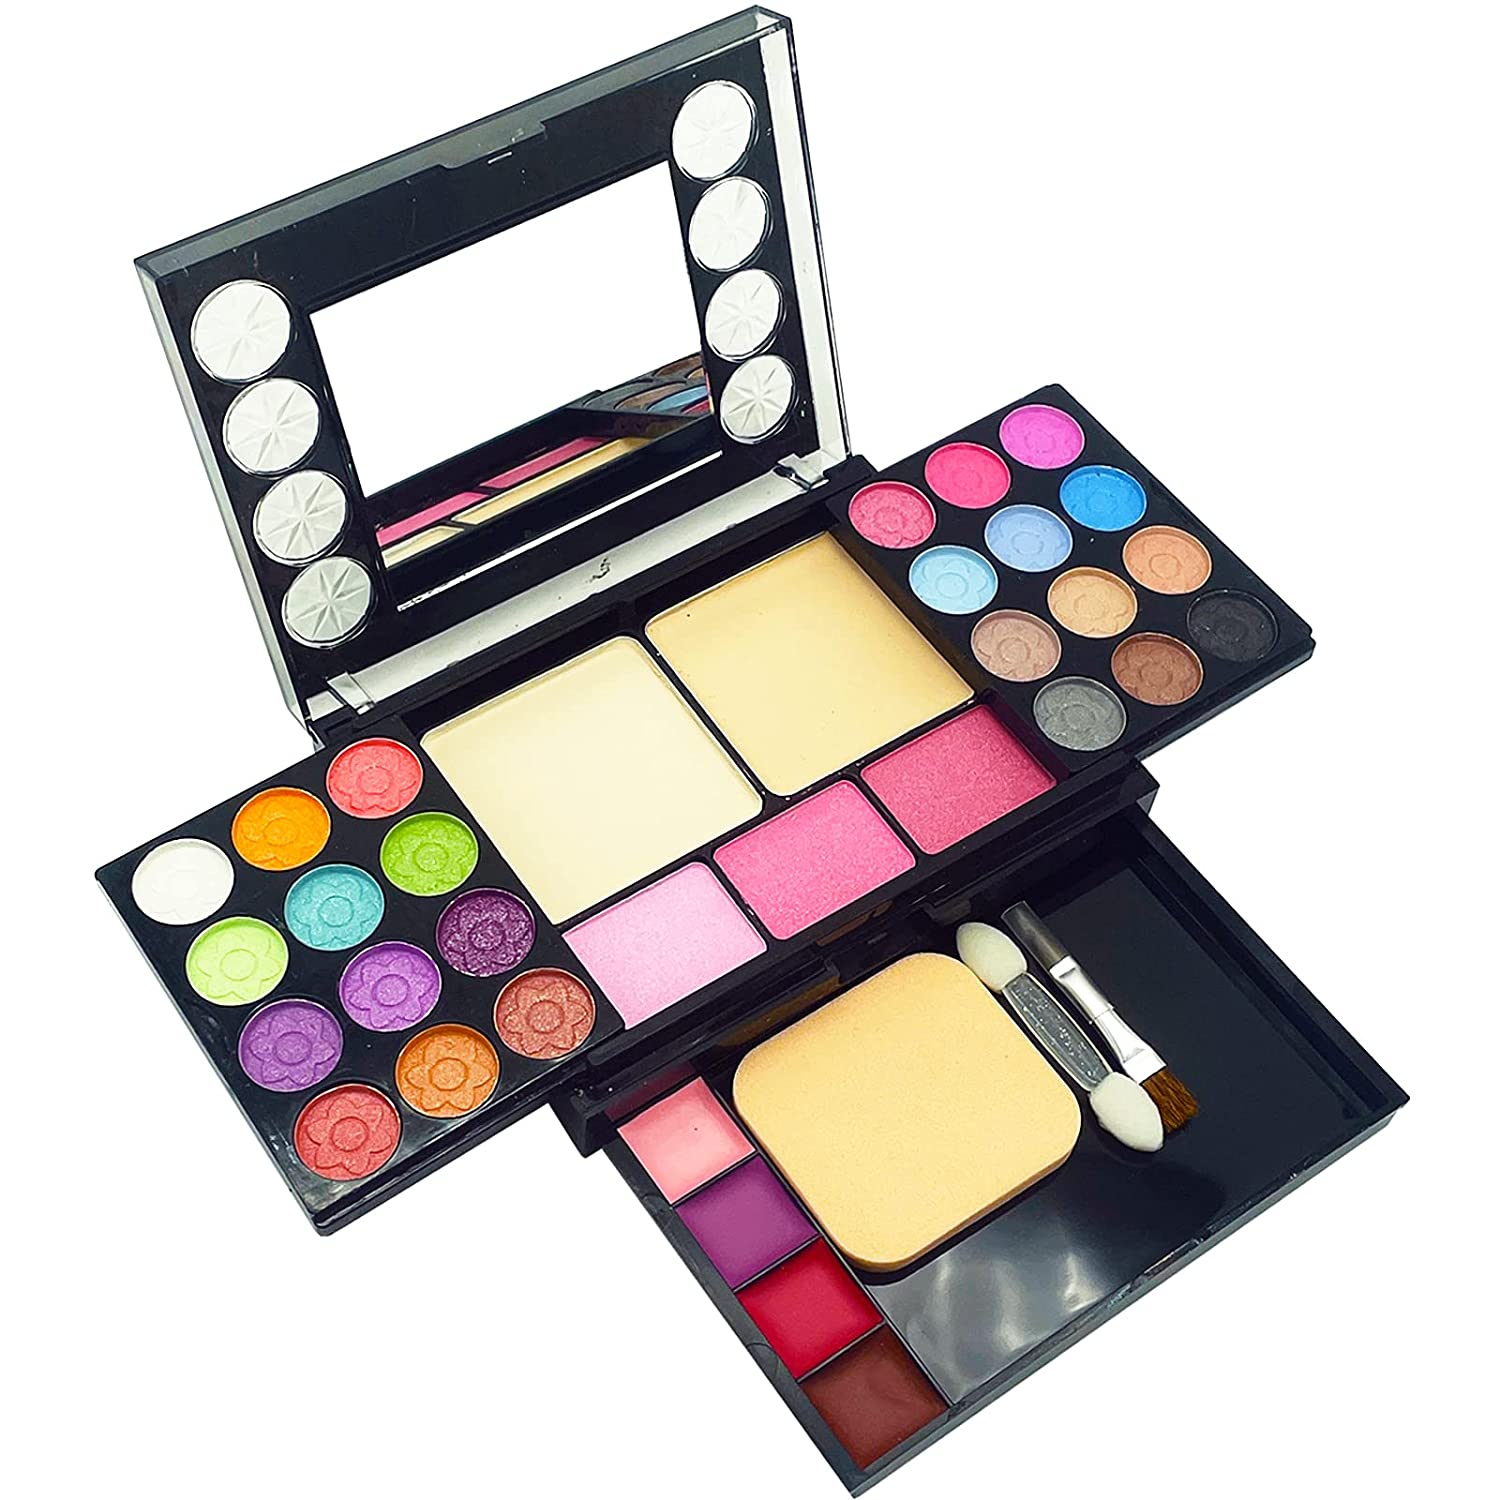 33 Colors Eye Makeup Palette Set, Matte and Shimmer Highly Pigmented Eye Makeup Palette, Long Lasting Blendable Professional Waterproof Eye Shadow Palette